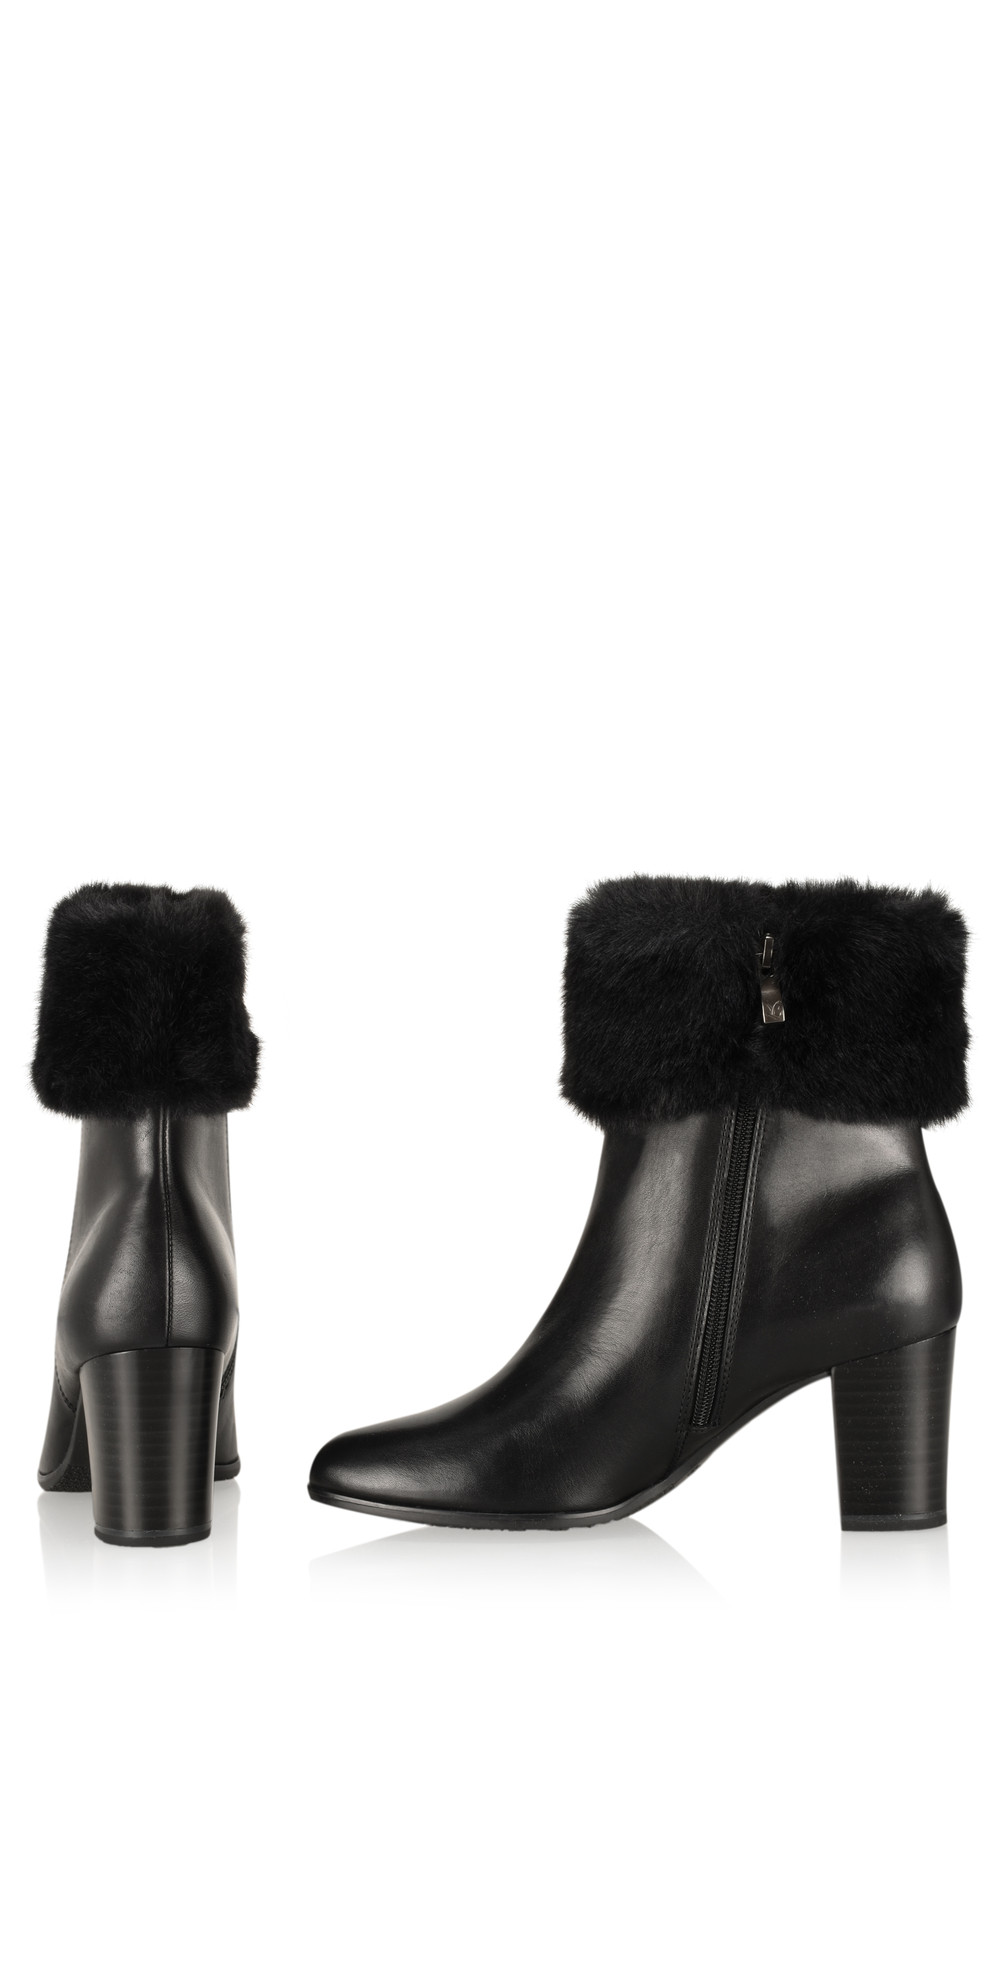 9d9c17927de Caprice Footwear Joli Fur Trimmed Ankle Boot in Black